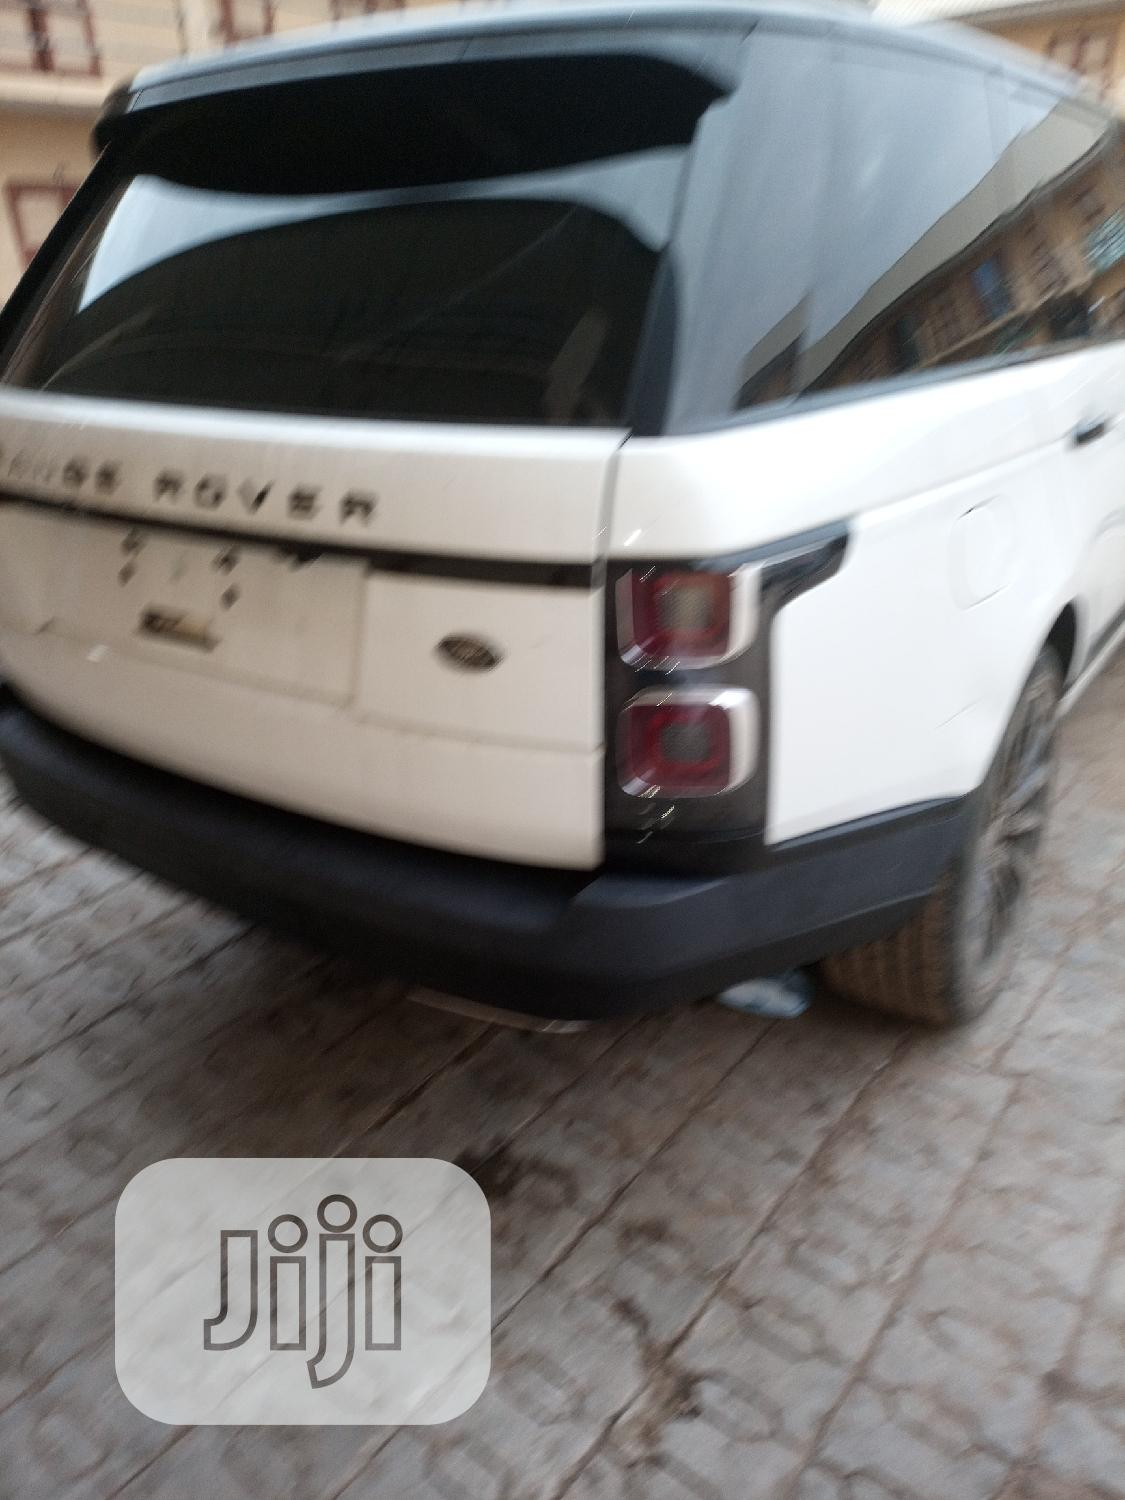 Upgrading Of Range Rover Vogue Samama 2014 To 2020 Model | Vehicle Parts & Accessories for sale in Mushin, Lagos State, Nigeria